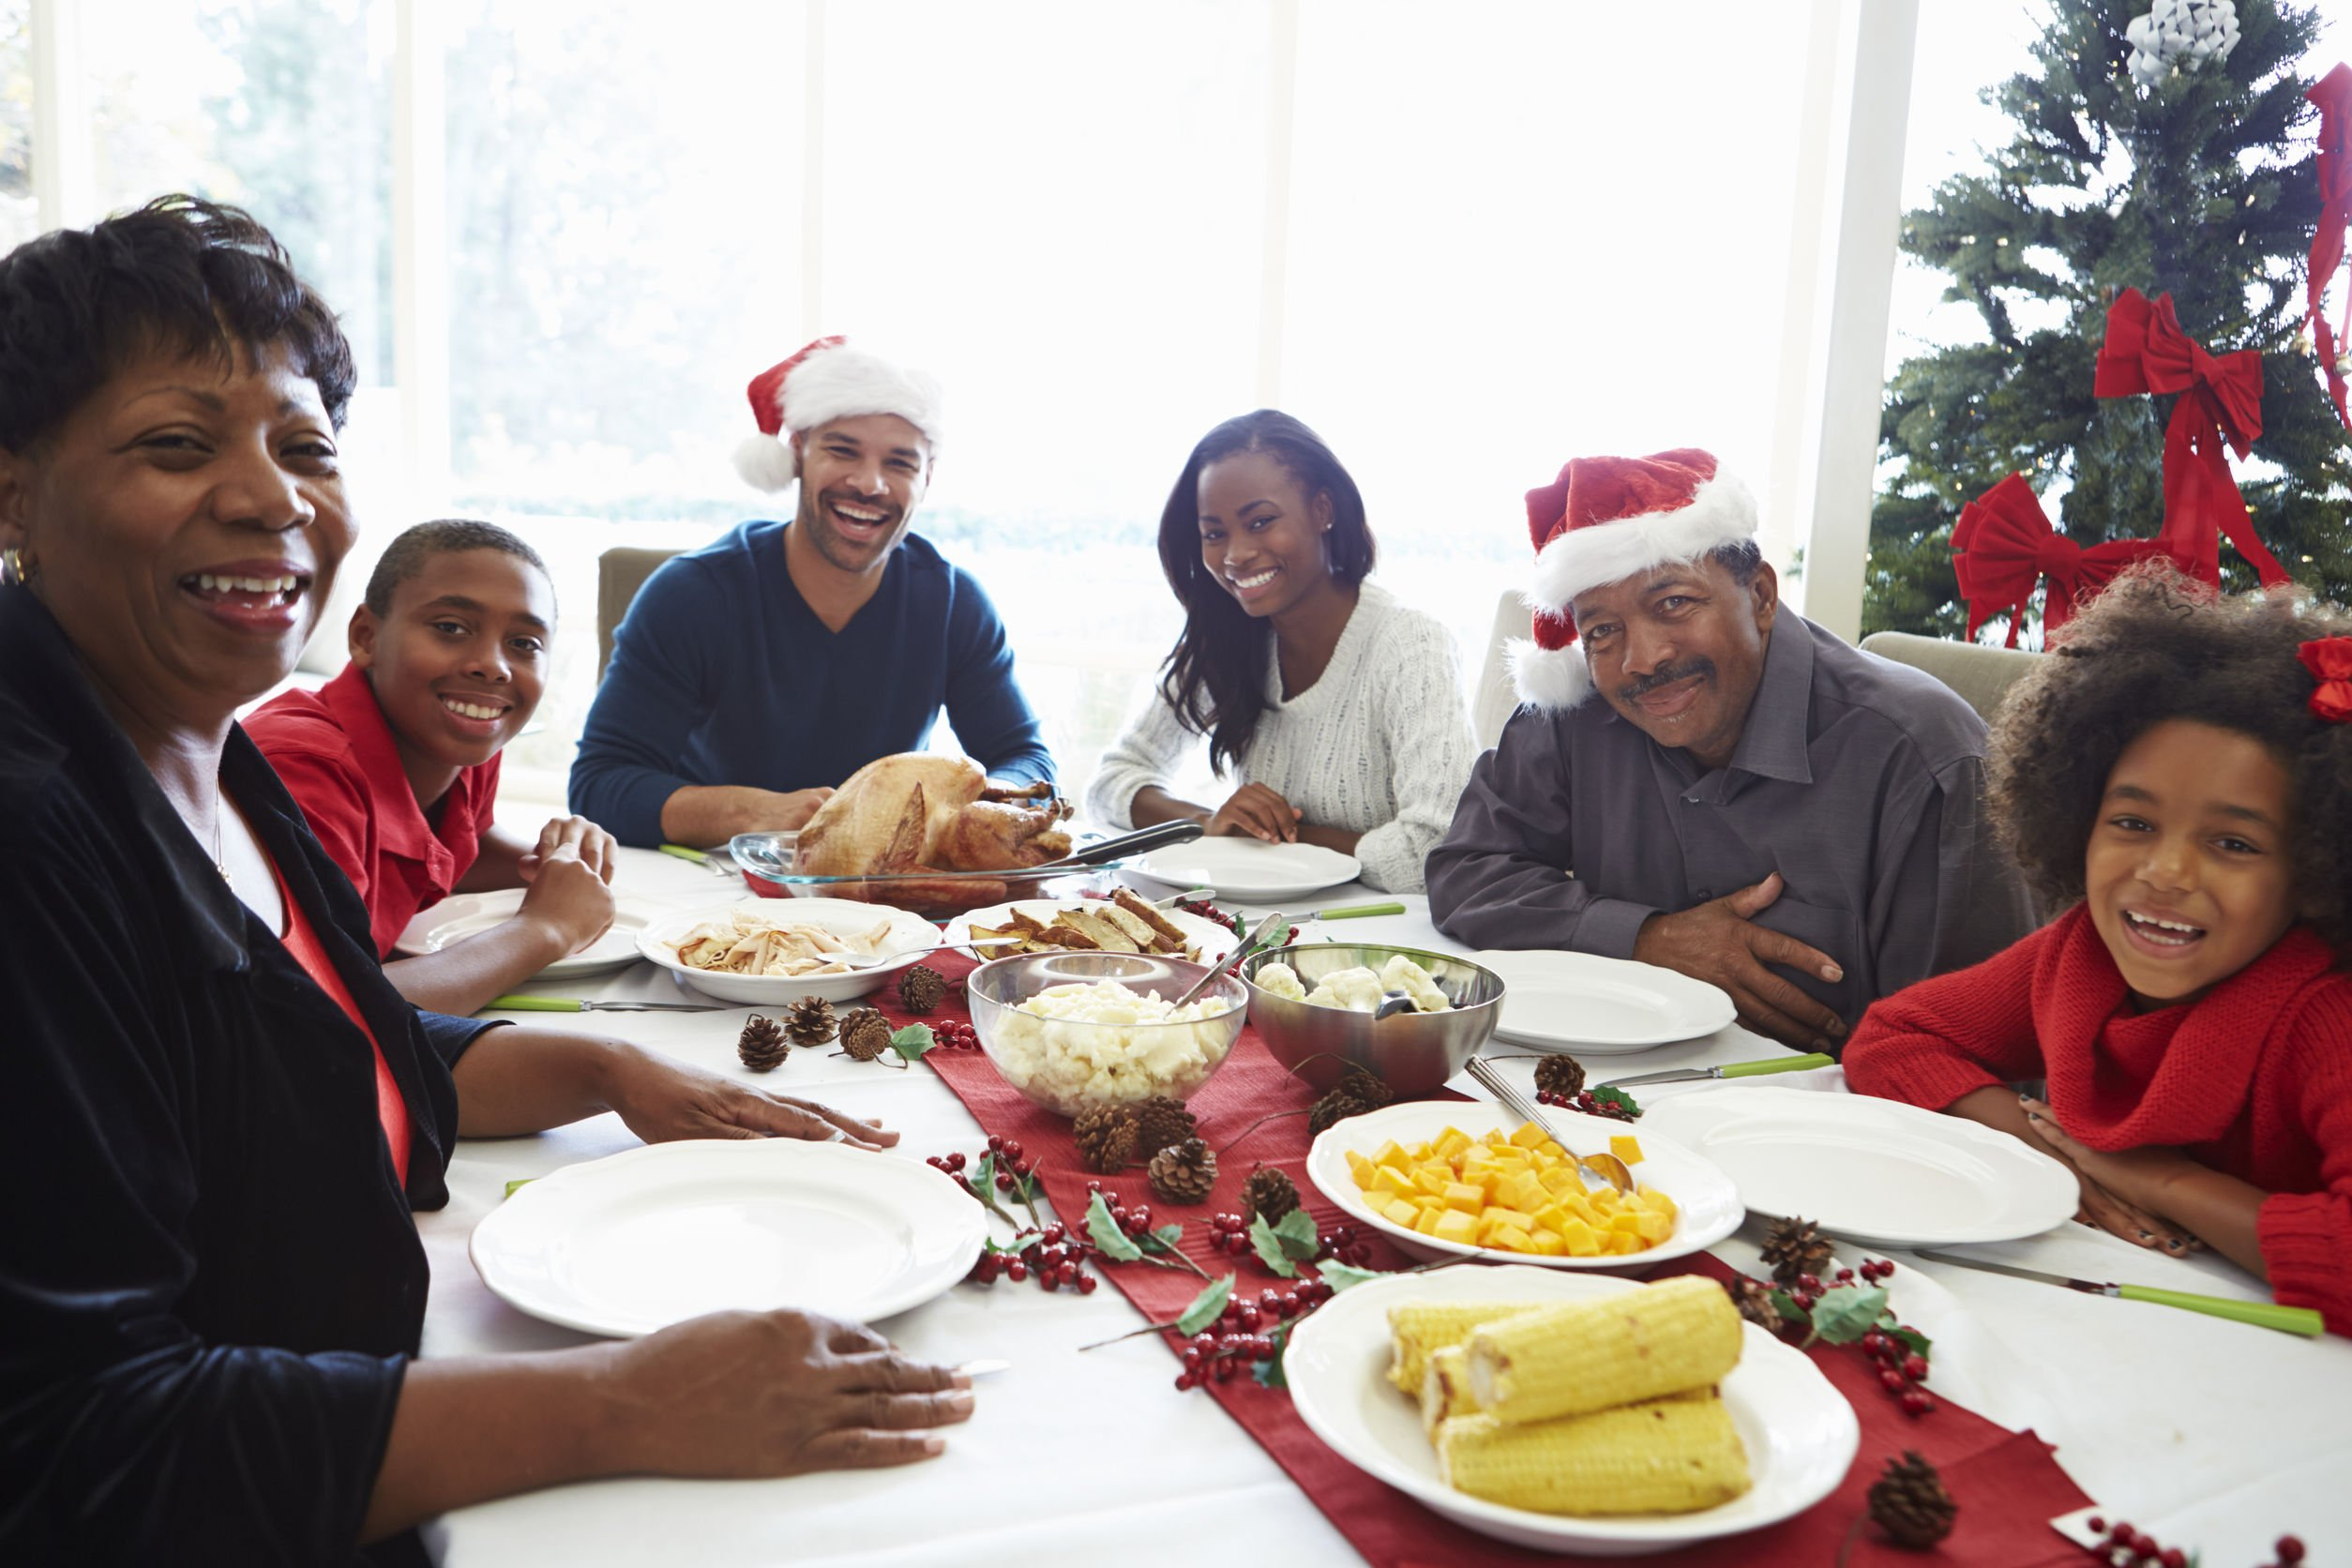 Family Matters Law Group Releases Expert Advice on Celebrating the Holidays With Blended, Separated or Divorced Families